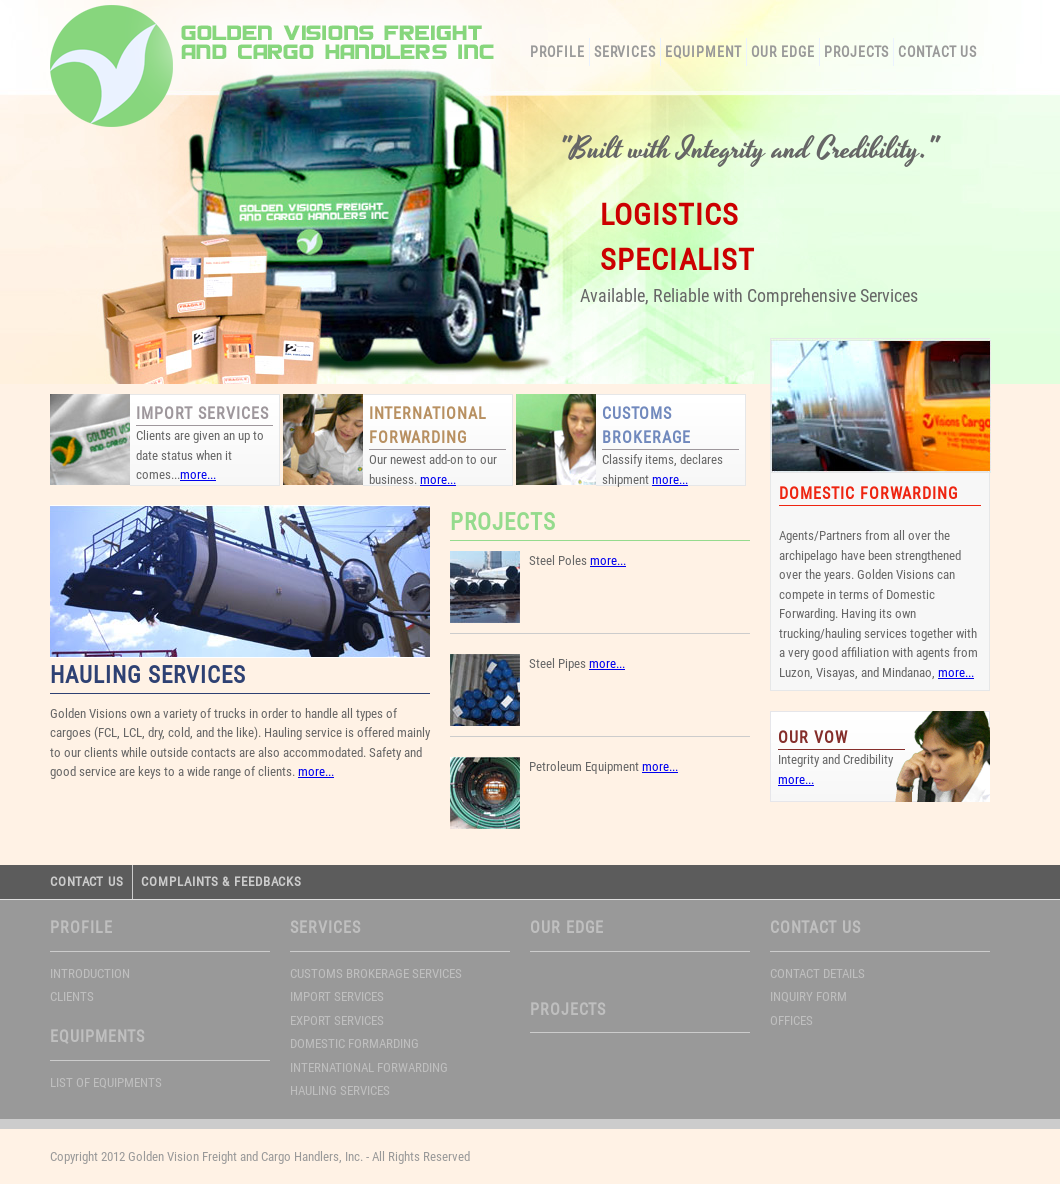 Golden Vision Freight And Cargo Handlers Competitors, Revenue and